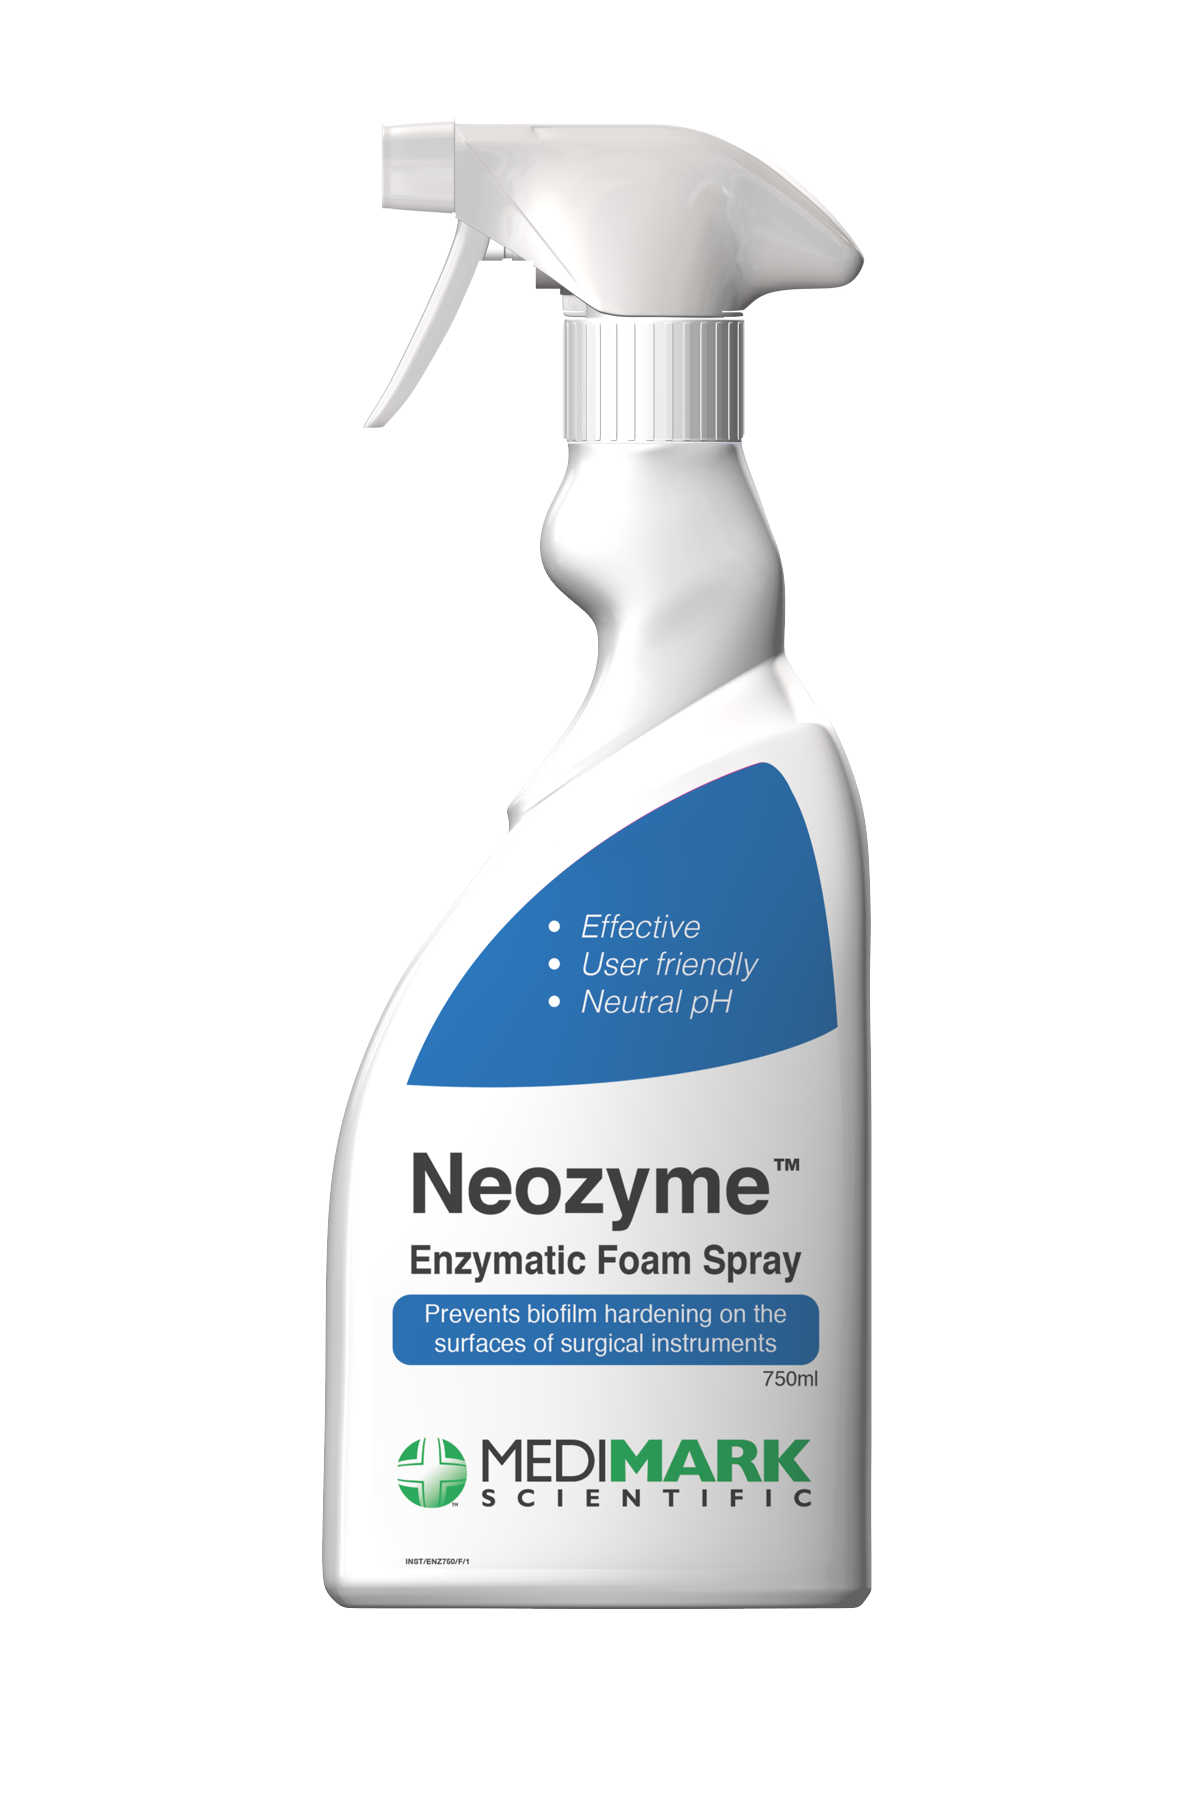 NEOZYME Enzymatic Foam Spray